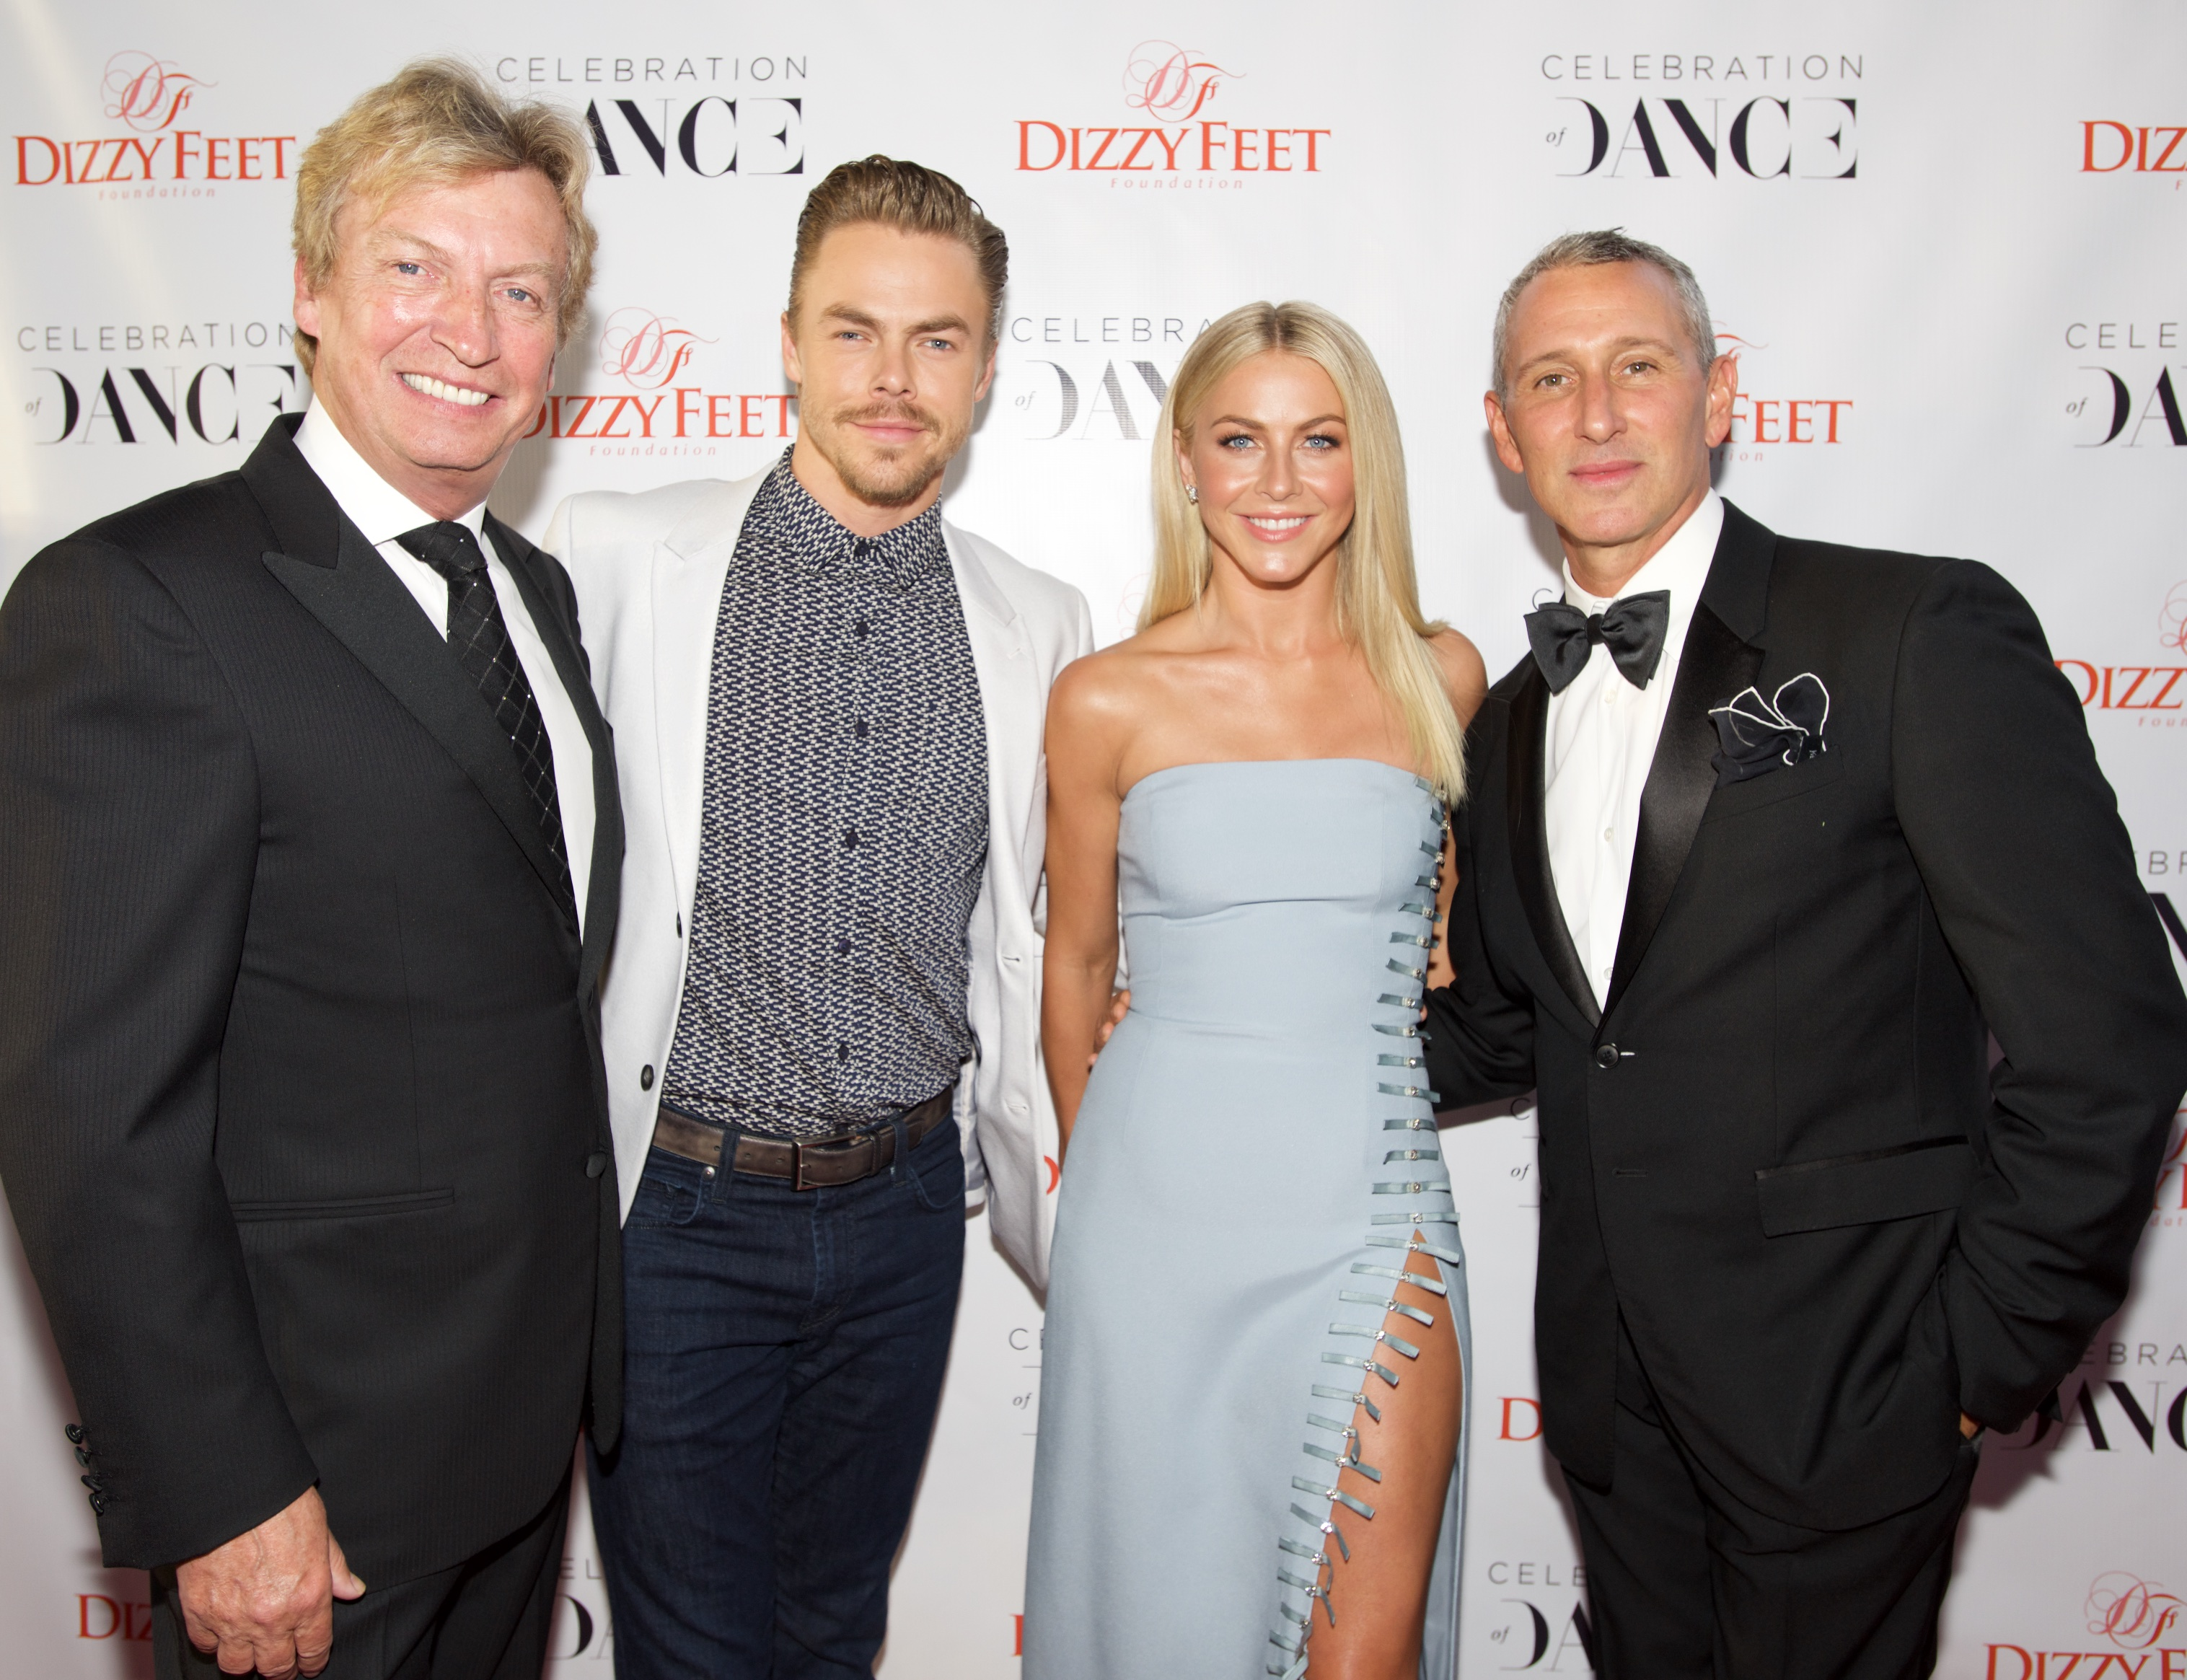 LOS ANGELES, CA - SEPTEMBER 10: (L-R) Host Nigel Lythgoe, professional dancer Derek Hough, dancer Julianne Hough and producer Adam Shankman attend the 6th Annual Celebration of Dance Gala Presented by The Dizzy Feet Foundation at The Novo by Microsoft on September 10, 2016 in Los Angeles, California. (Photo by Earl Gibson III/Getty Images for Dizzy Feet Foundation)